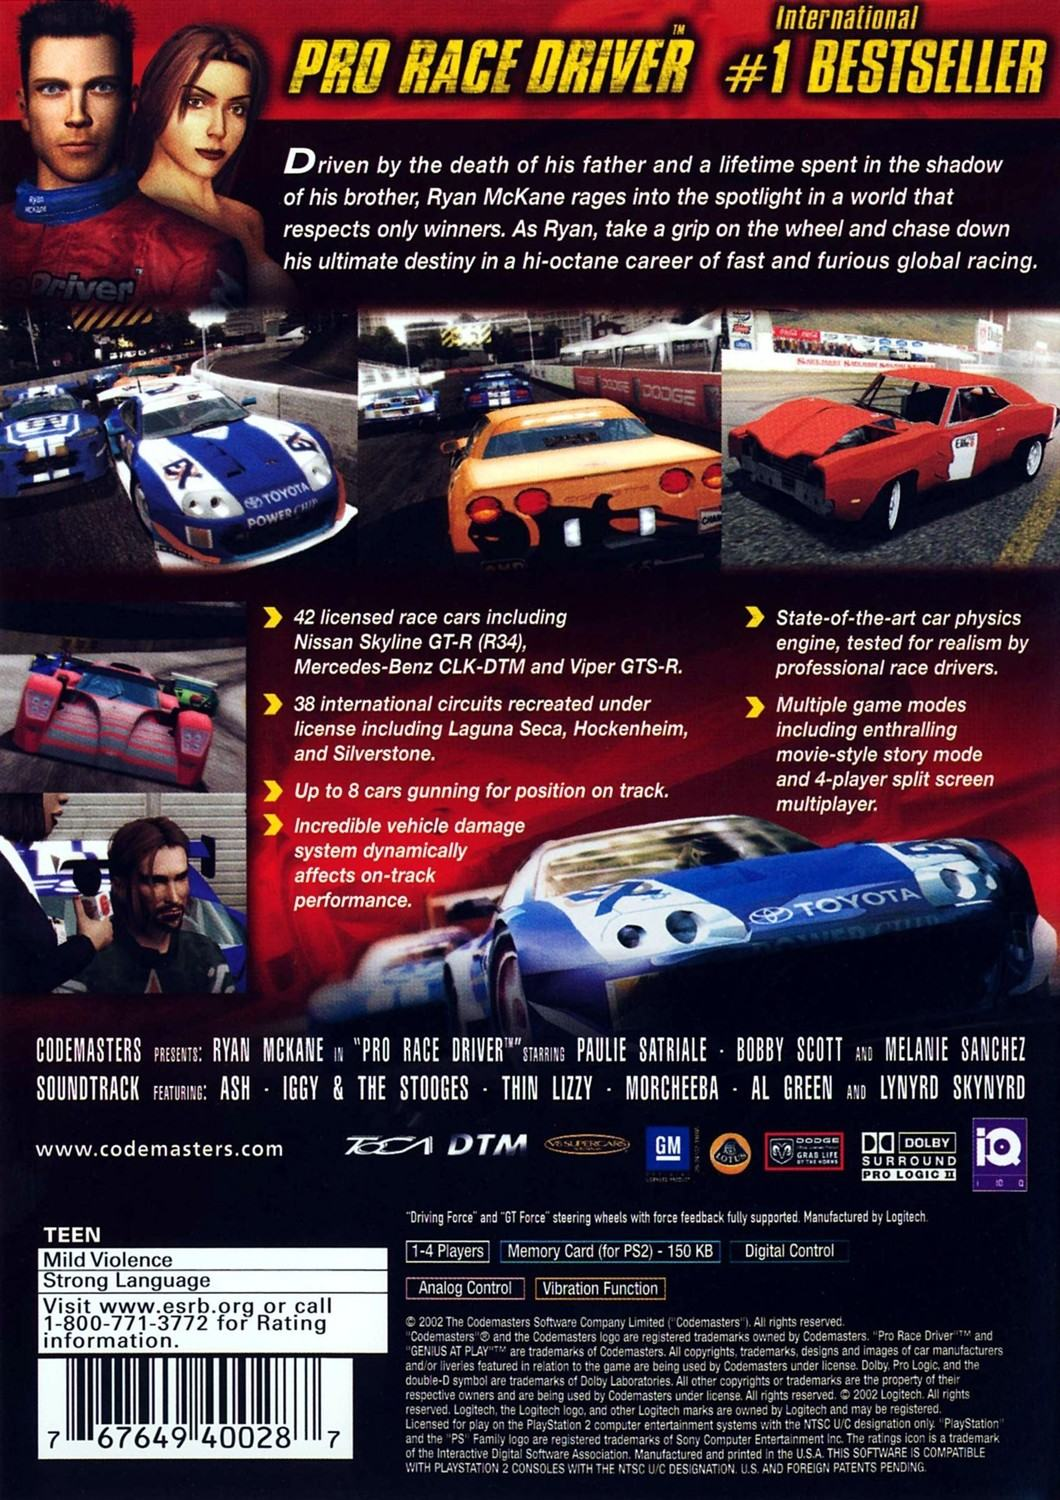 Pro Race Driver - Playstation 2: PS2 game